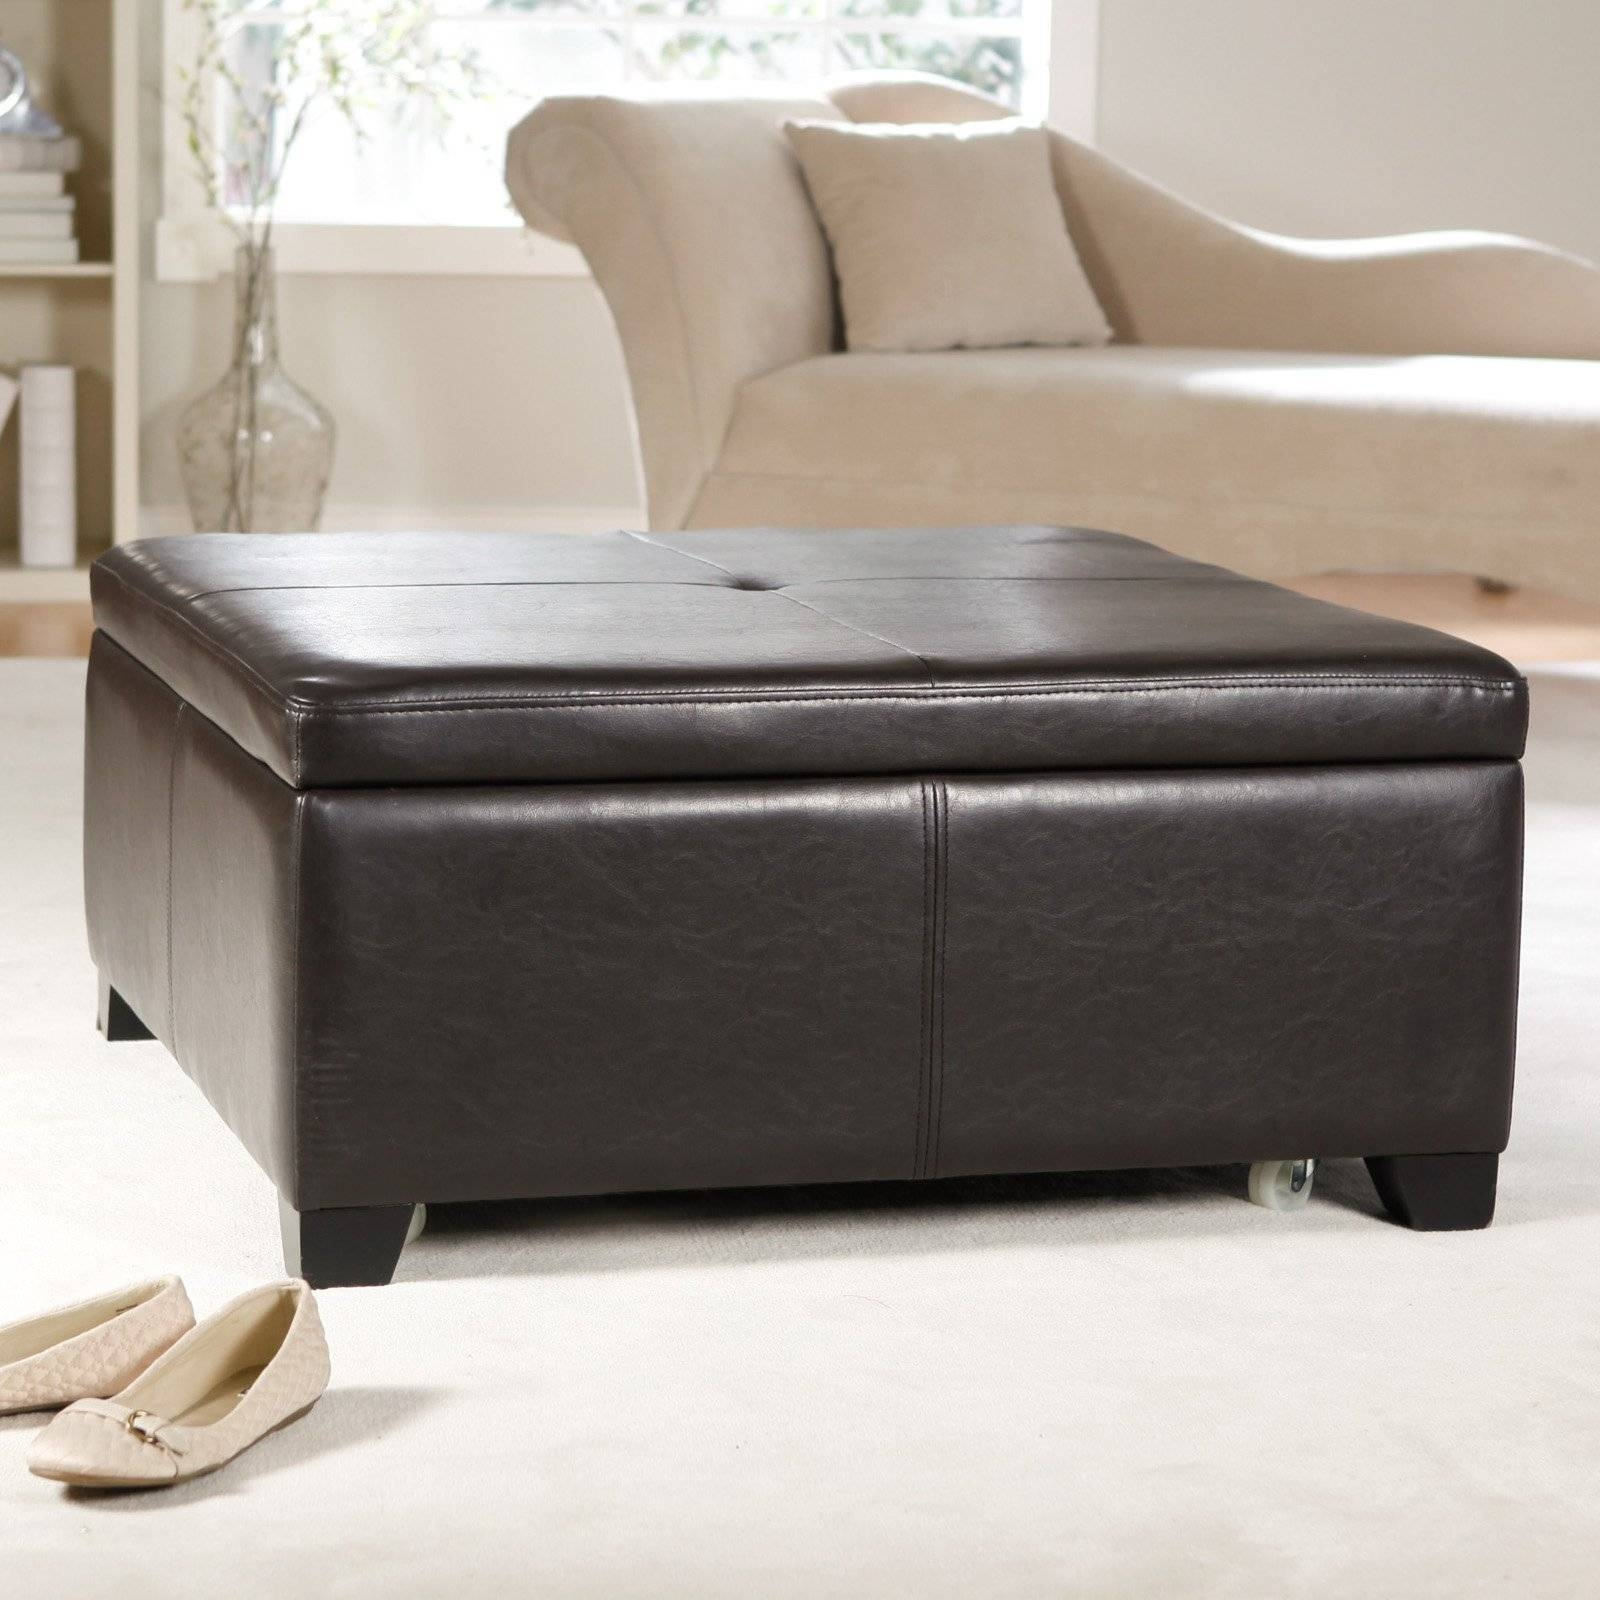 Square Coffee Tables With Storage | Coffeetablesmartin regarding Square Coffee Tables With Storage (Image 27 of 30)